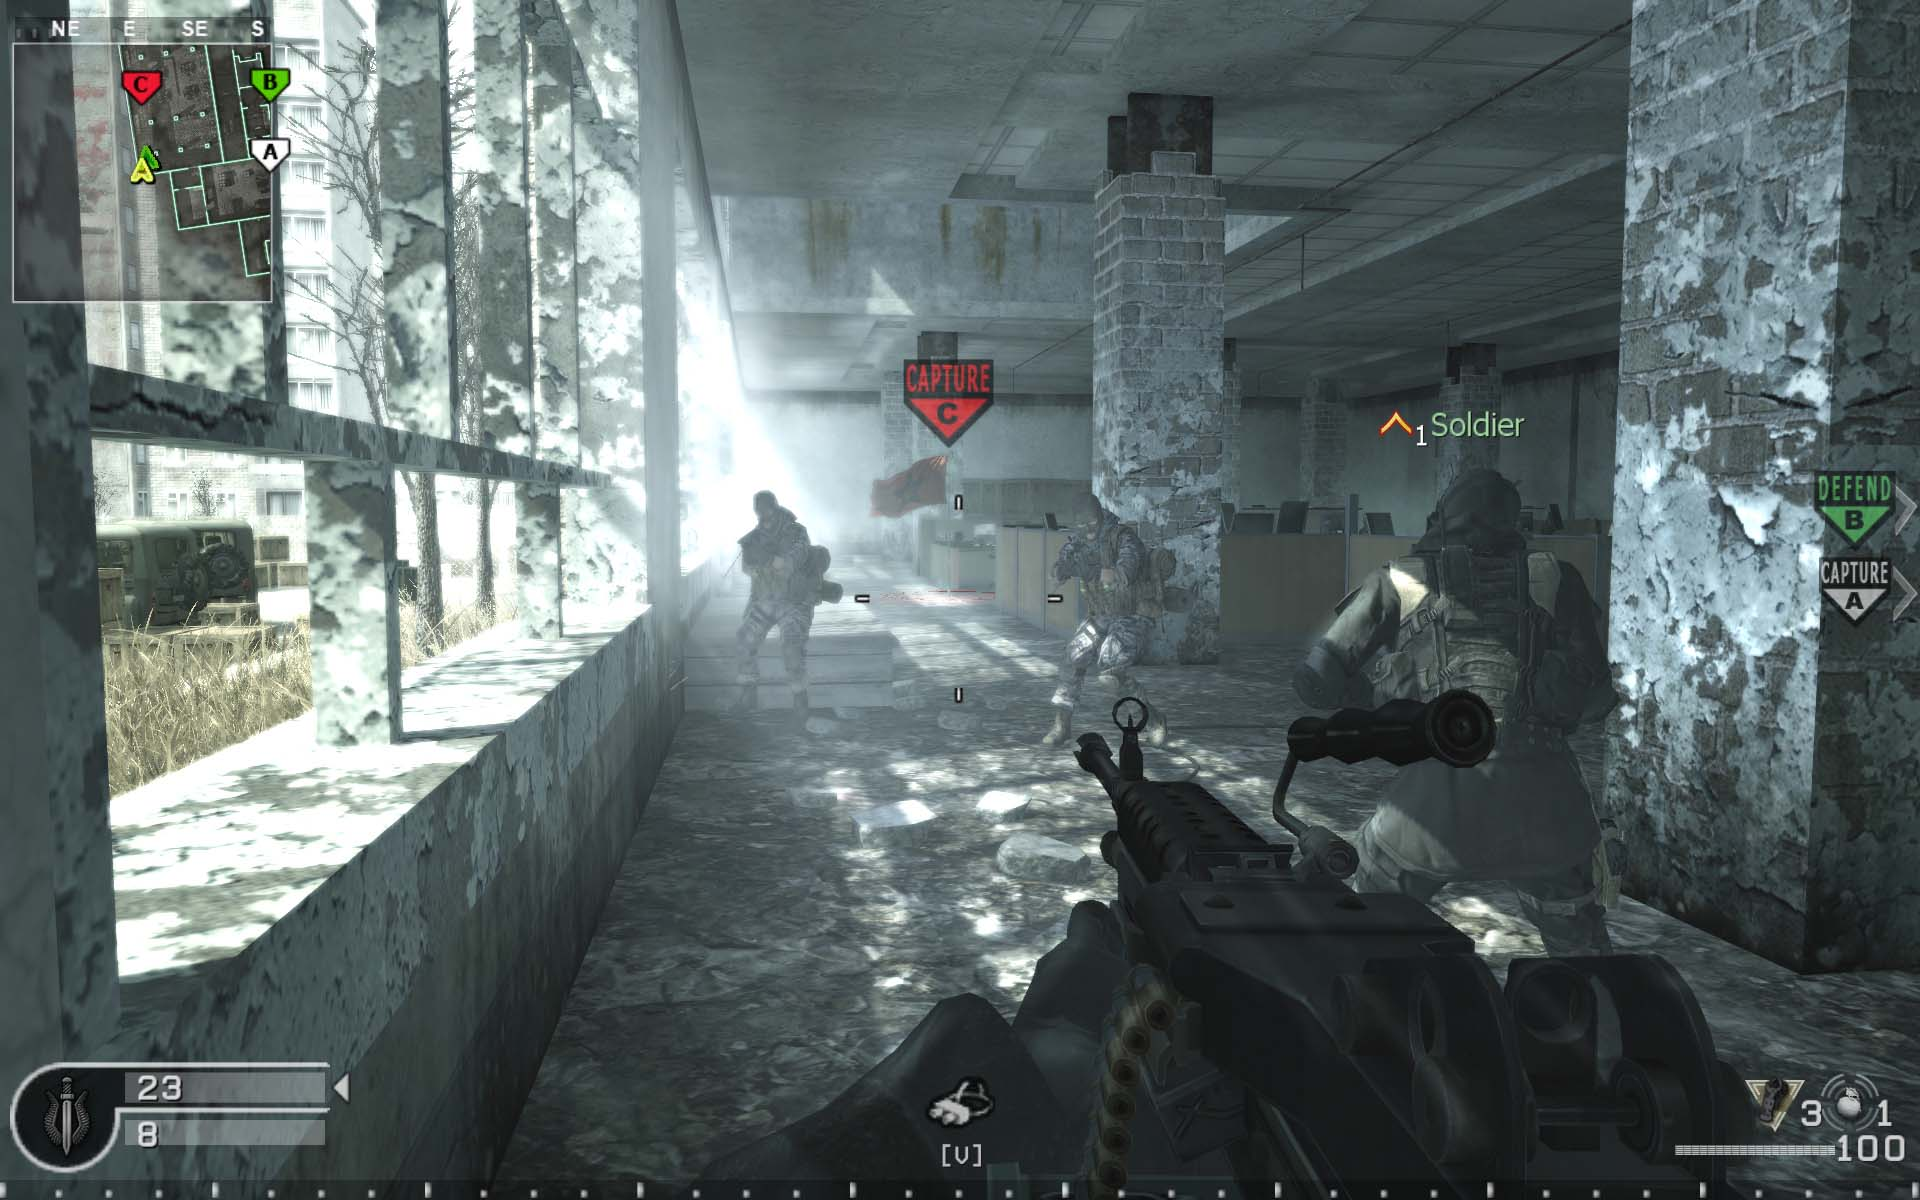 call of duty modern warfare 4 free download full pc game